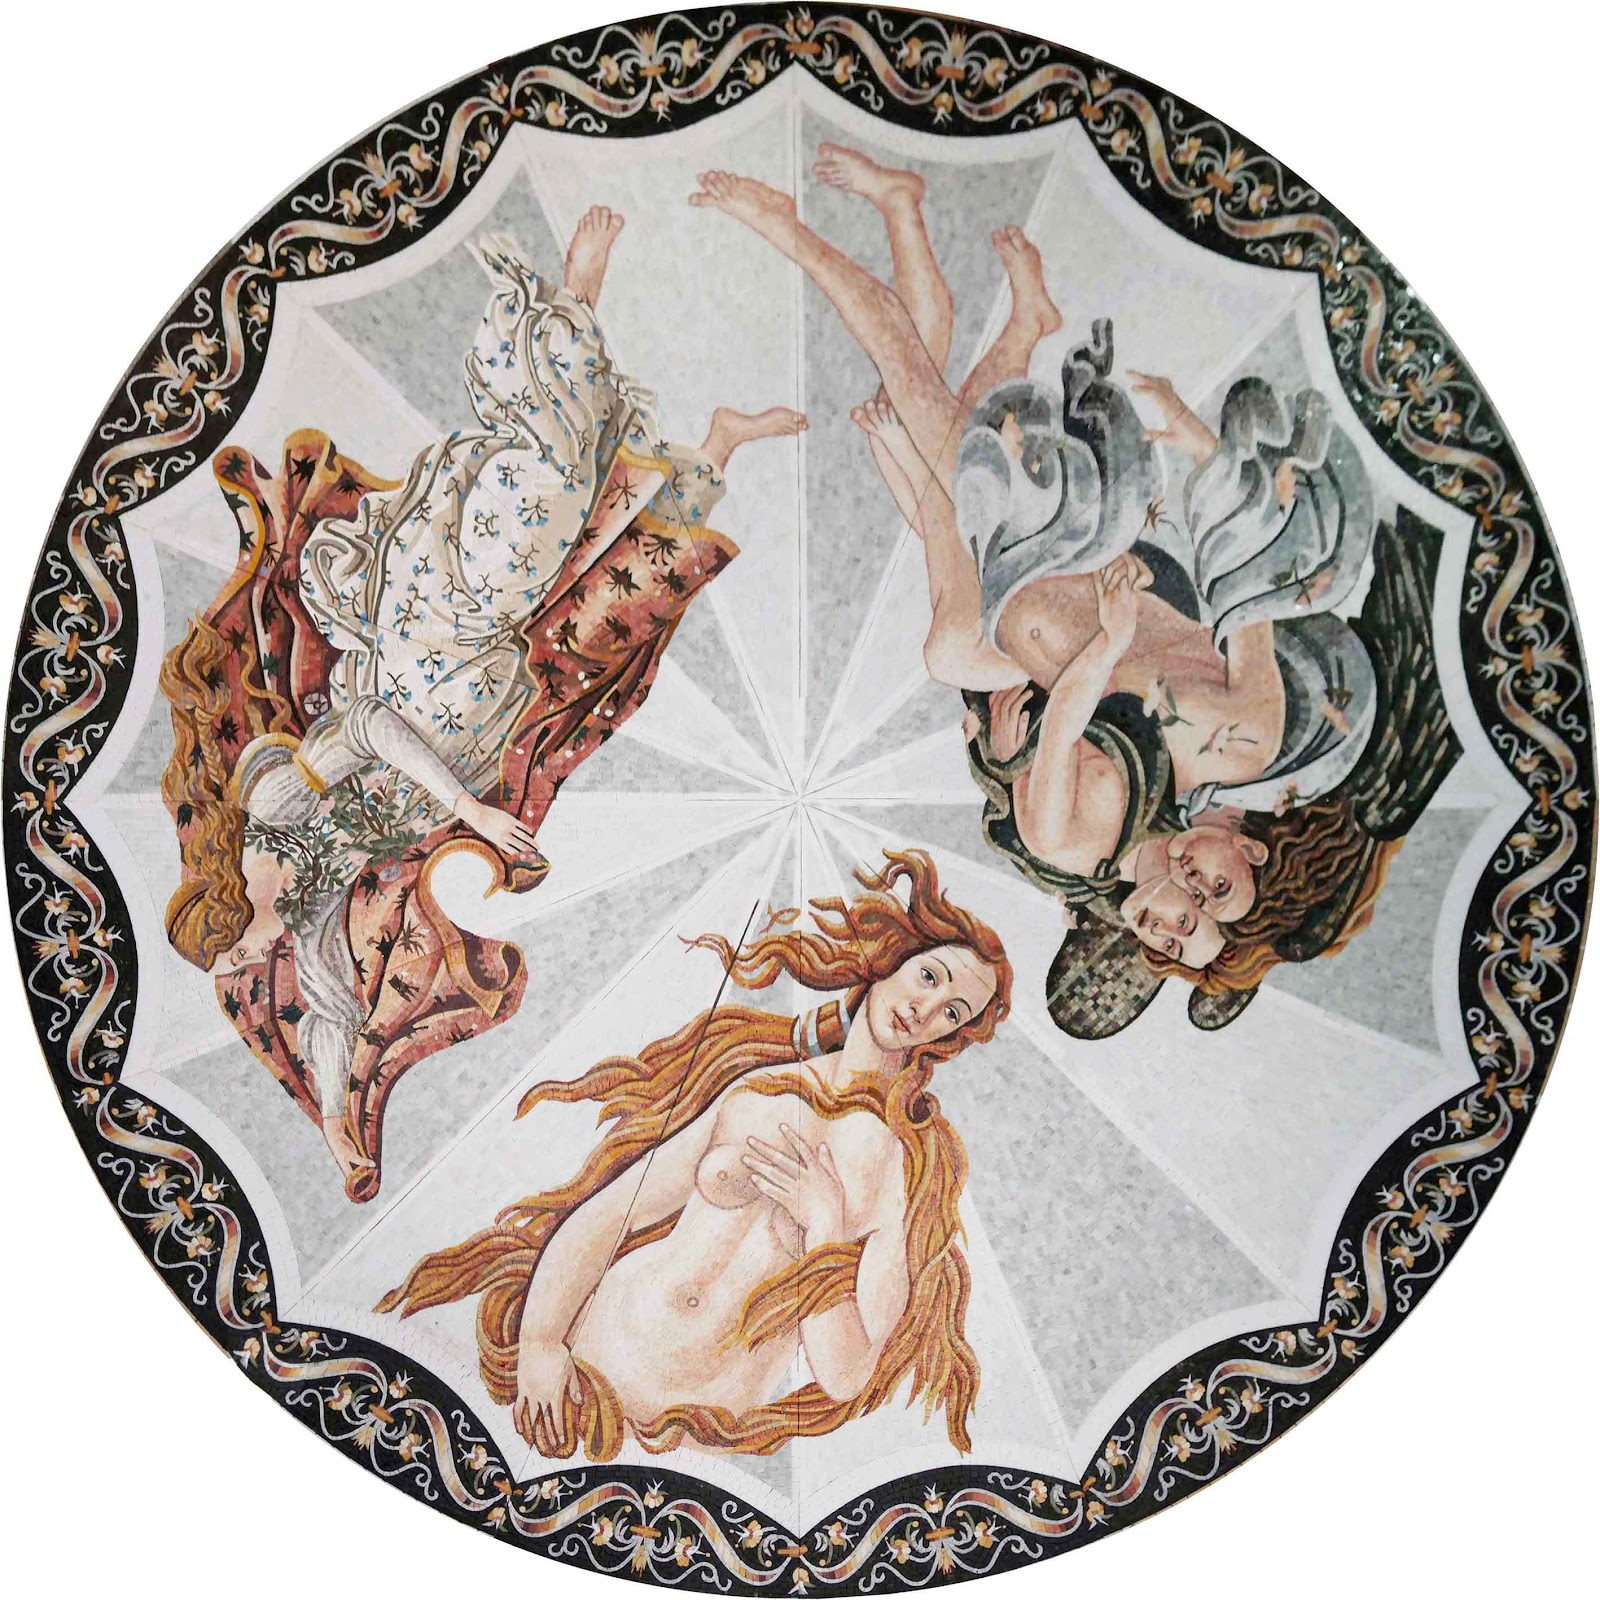 The Birth of Venus by Sandro Botticelli - Mosaic Art Reproduction by Mozaico